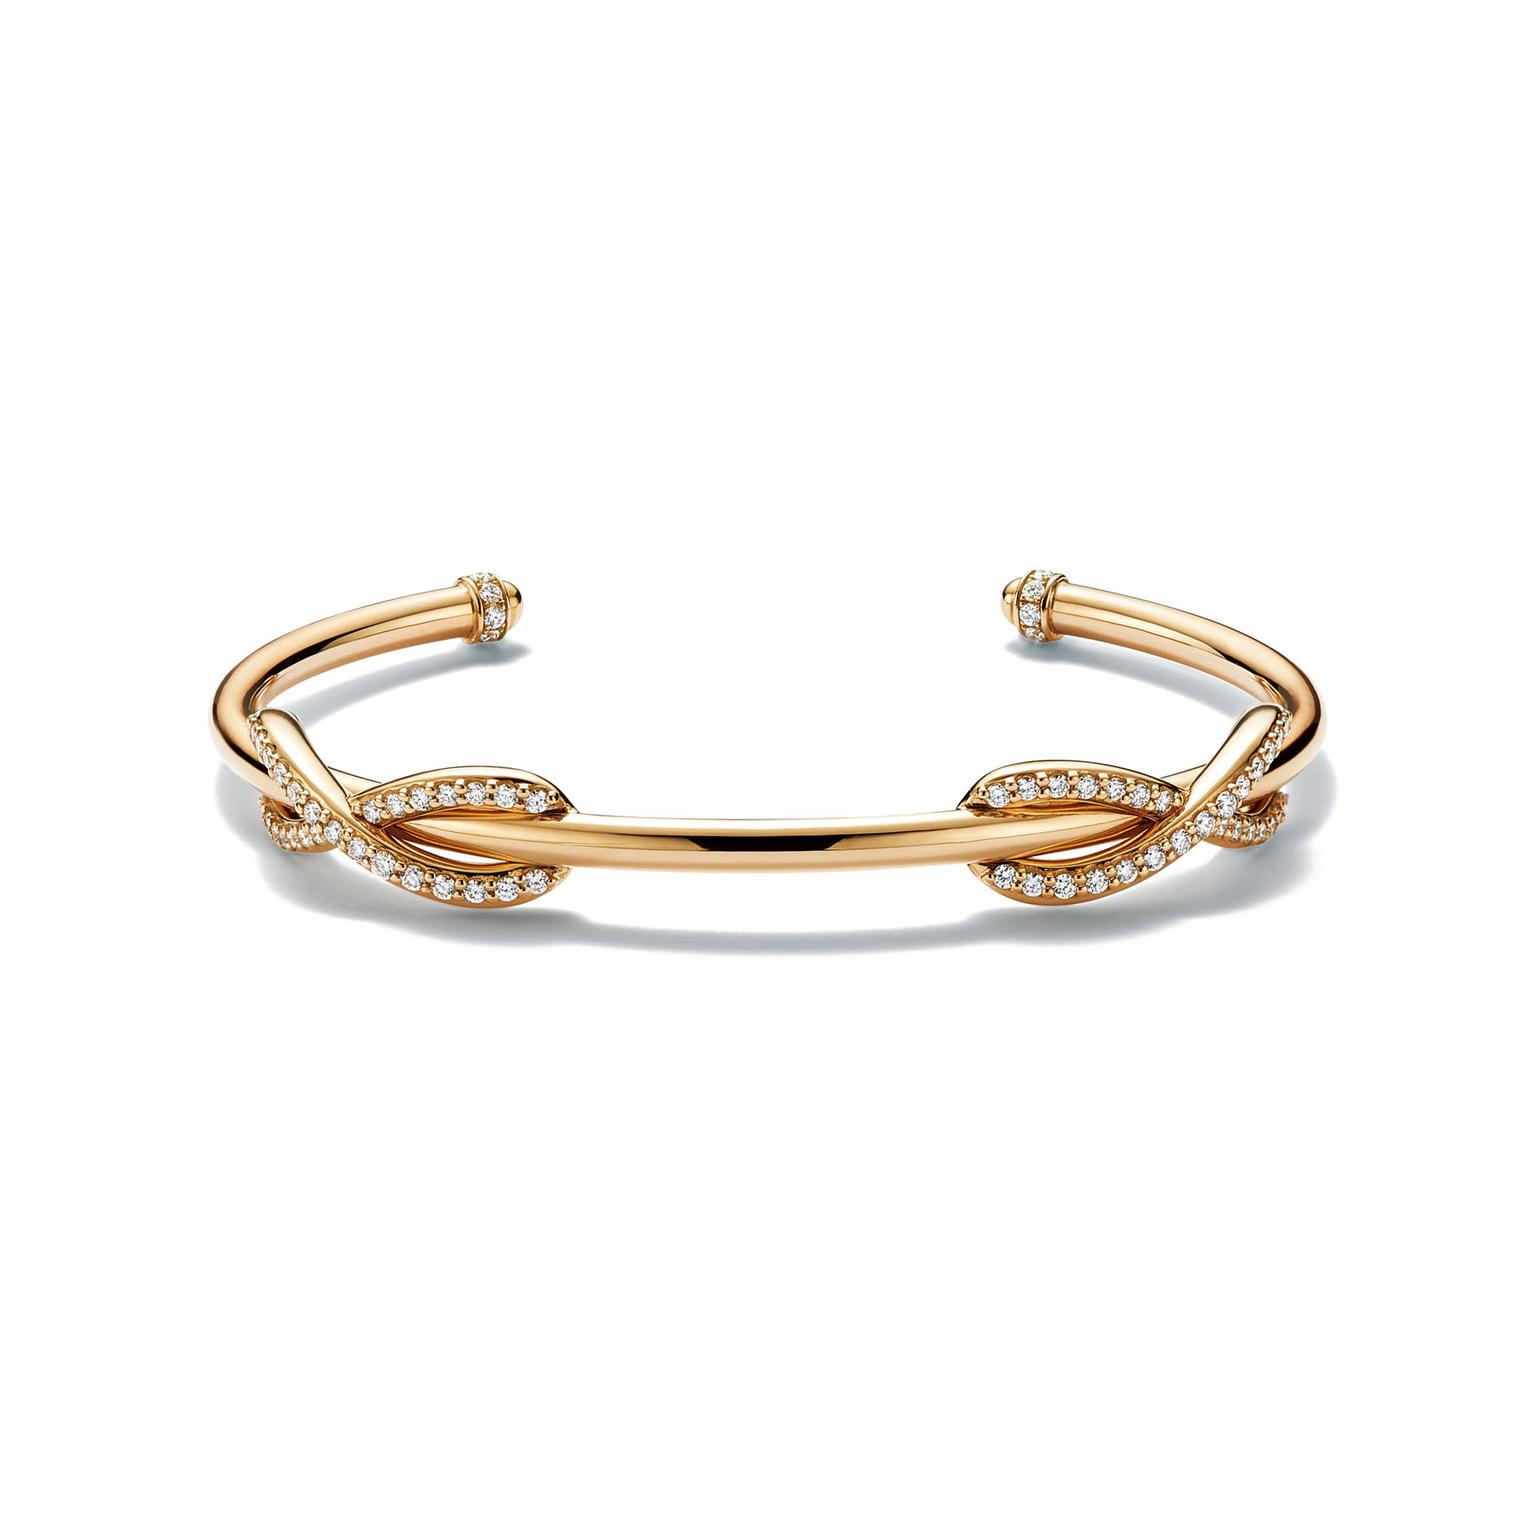 Tiffany Infinity cuff in yellow gold